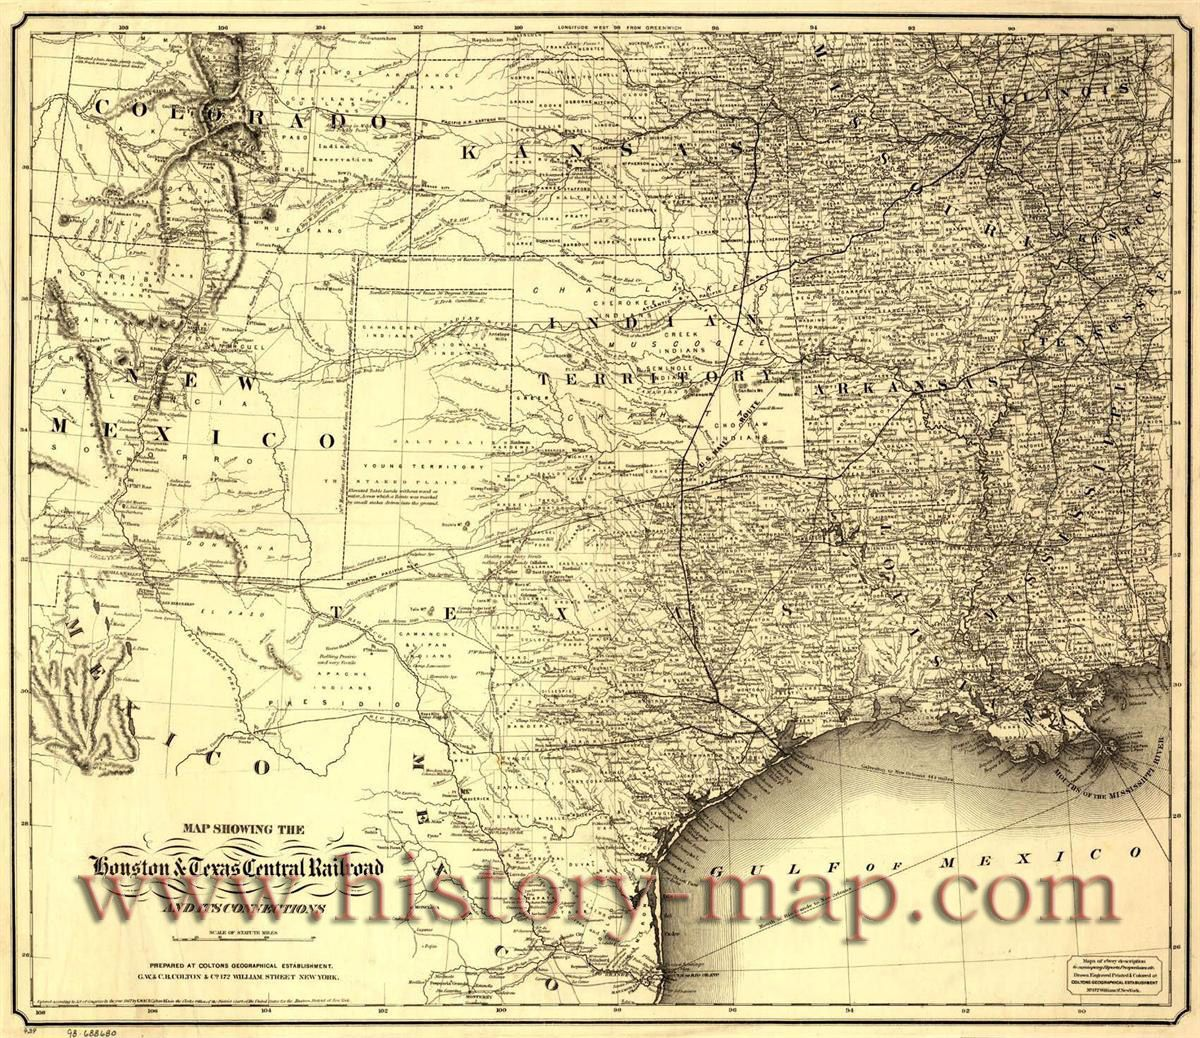 Houston & Texas Central Railroad   MAPS   Vintage, Old maps, Antique on